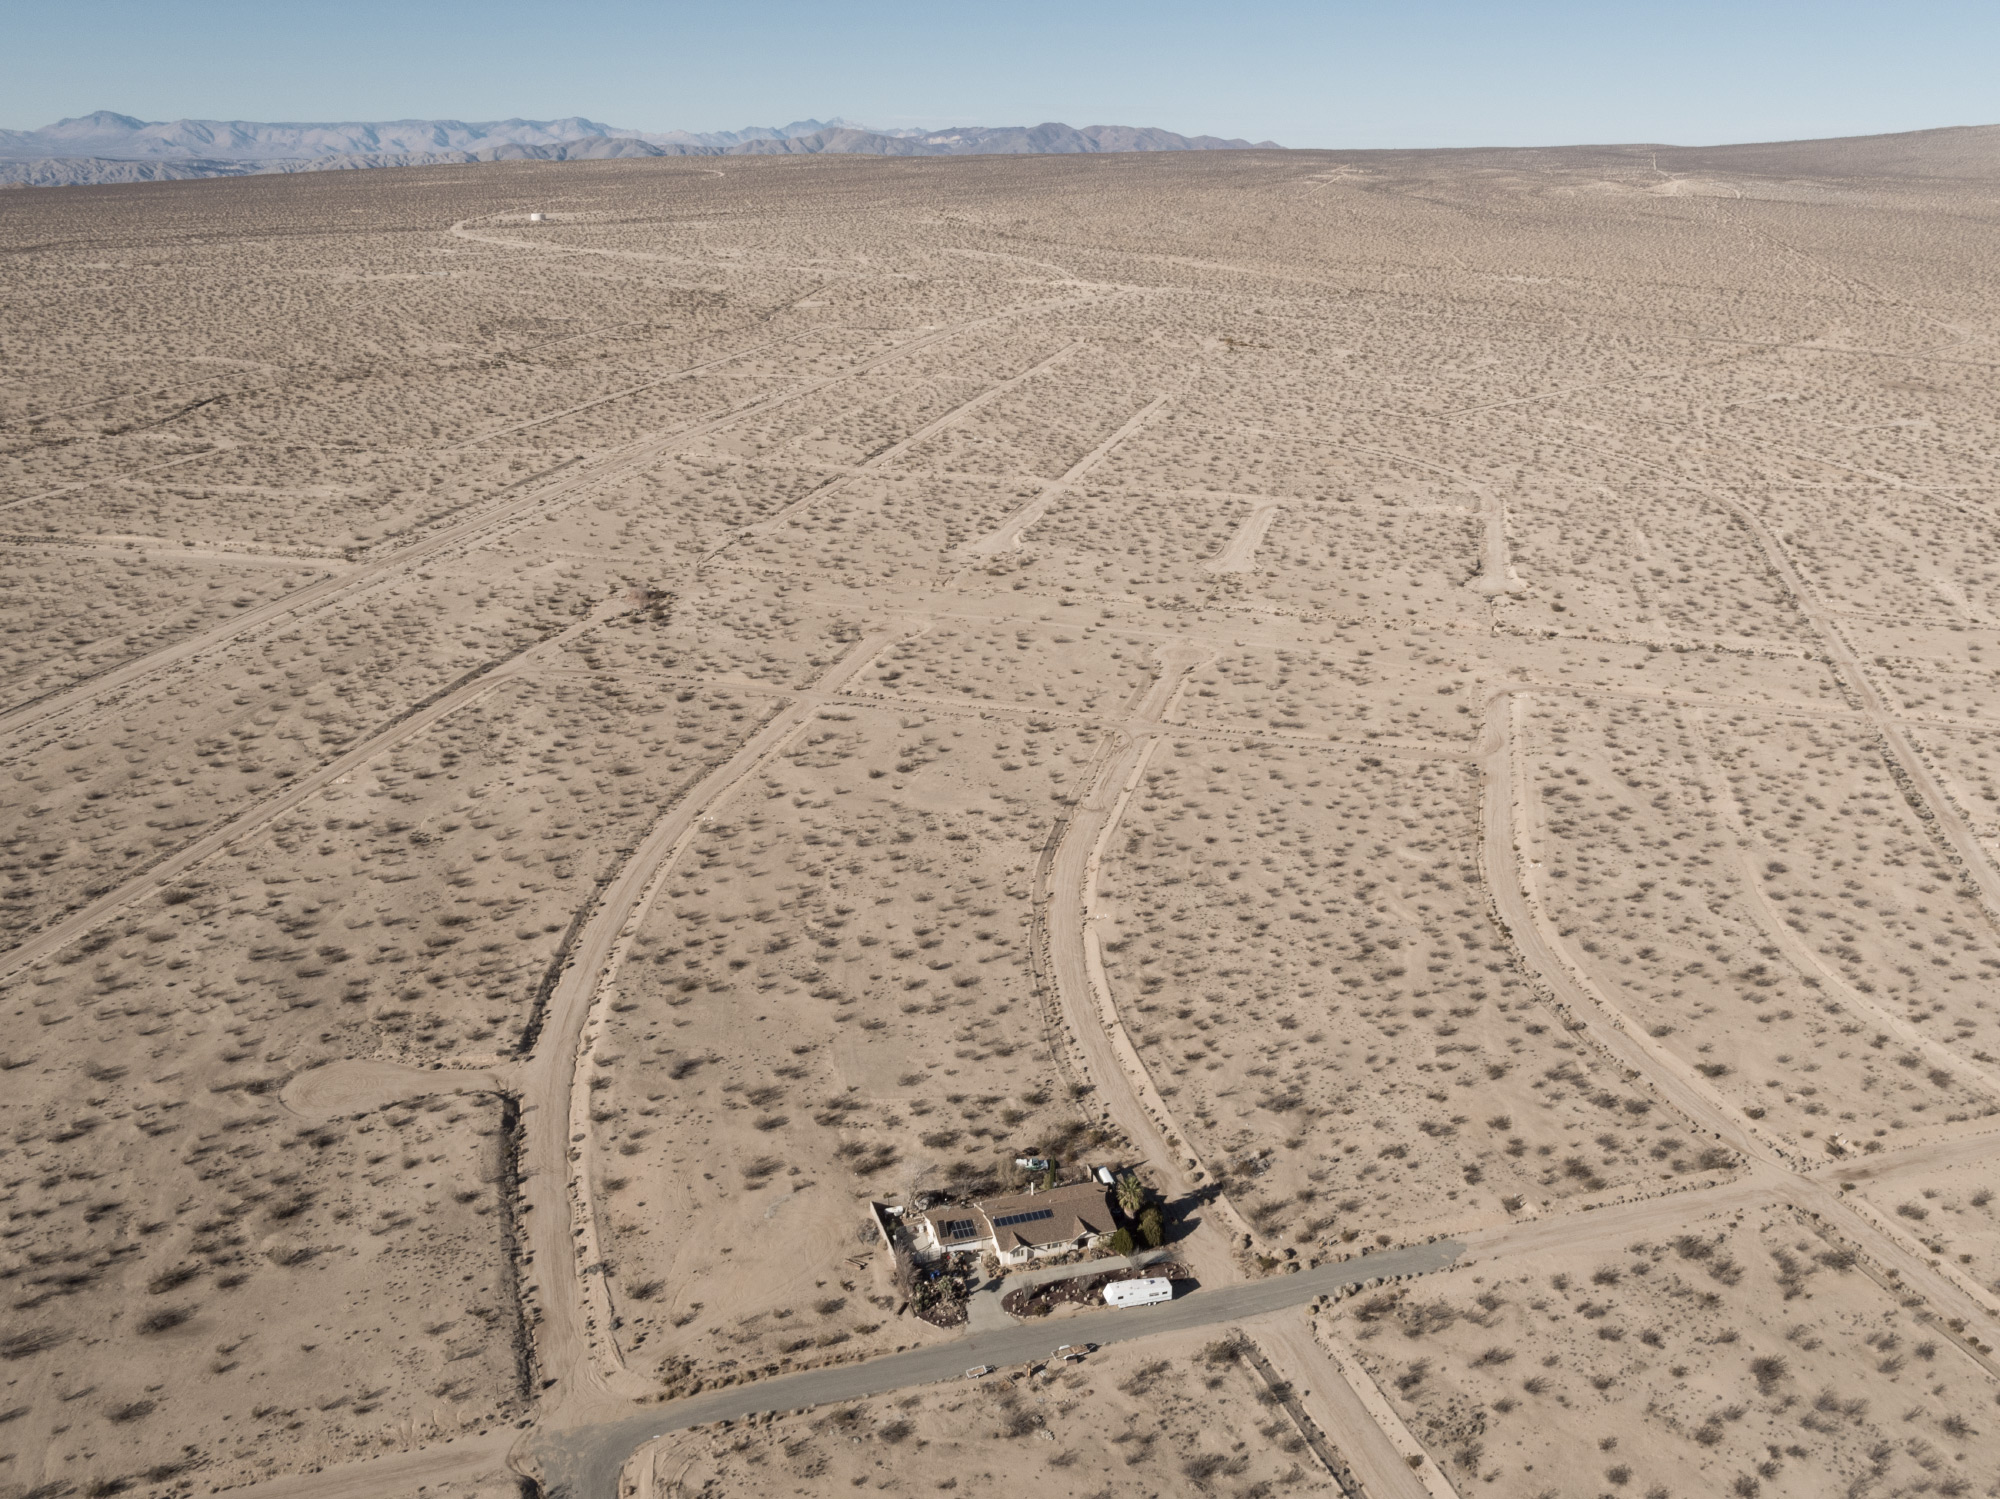 An aerial view of a tiny town in a desert in California.